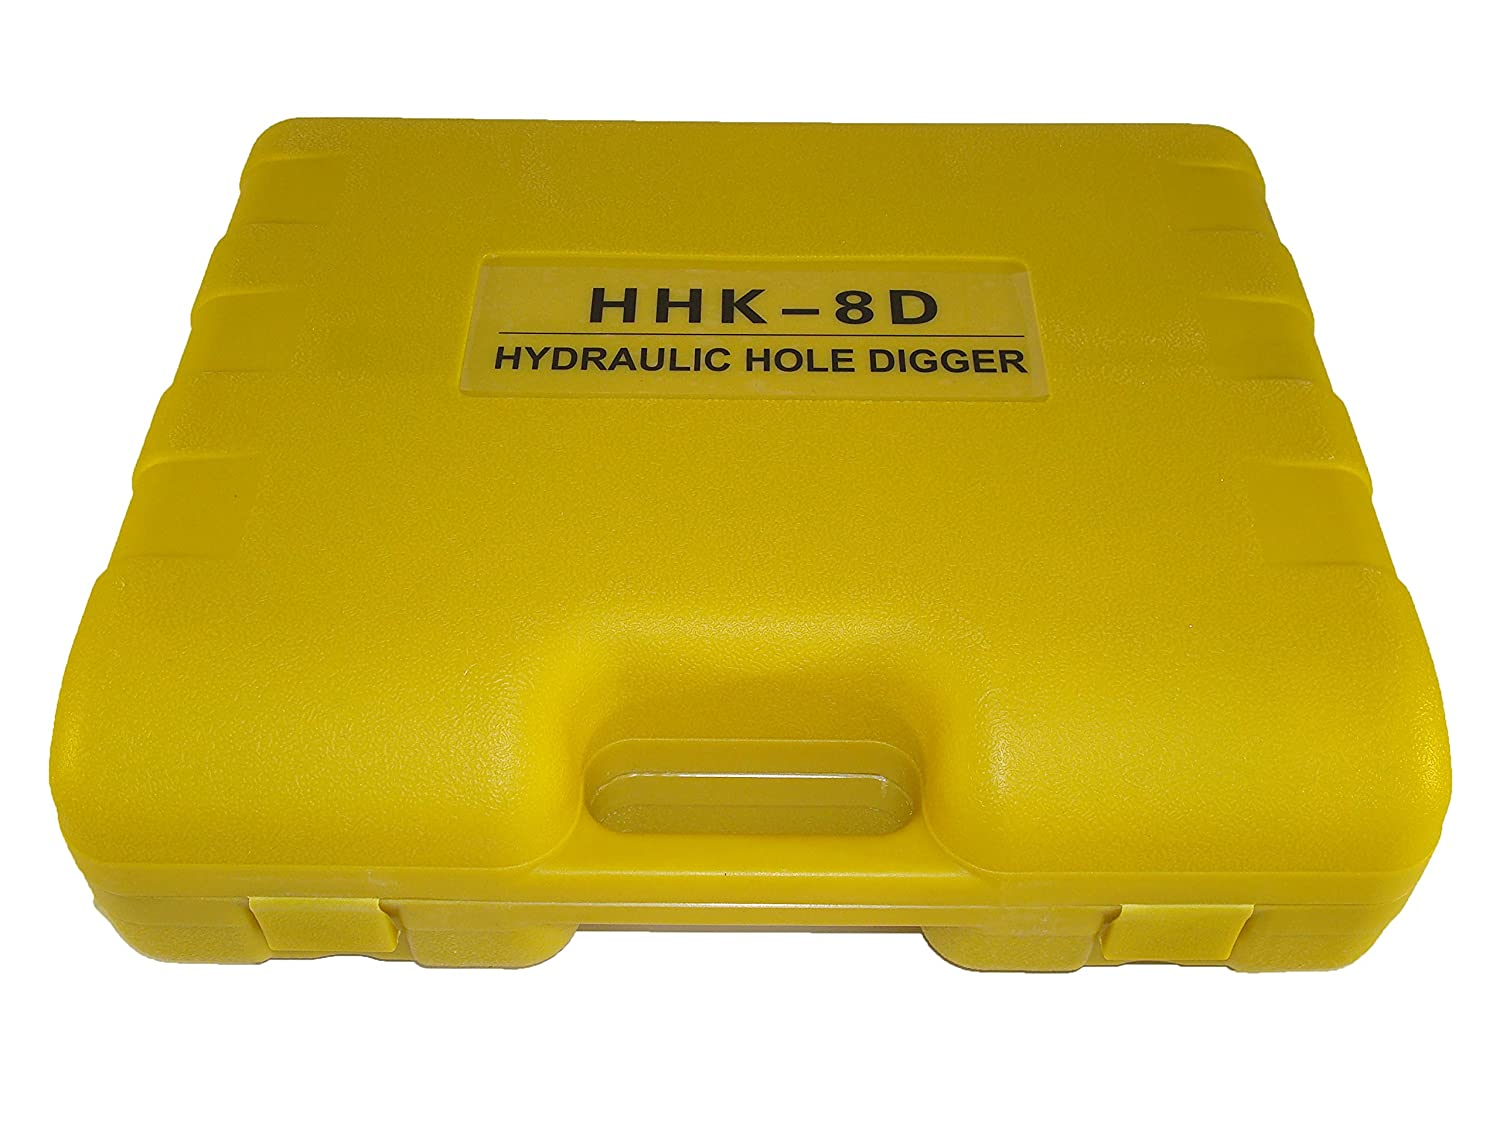 7//8-2 3//8, 11 tons K-8D Hydraulic Hole Punch Knockout Set 6 Dies Hand Pump